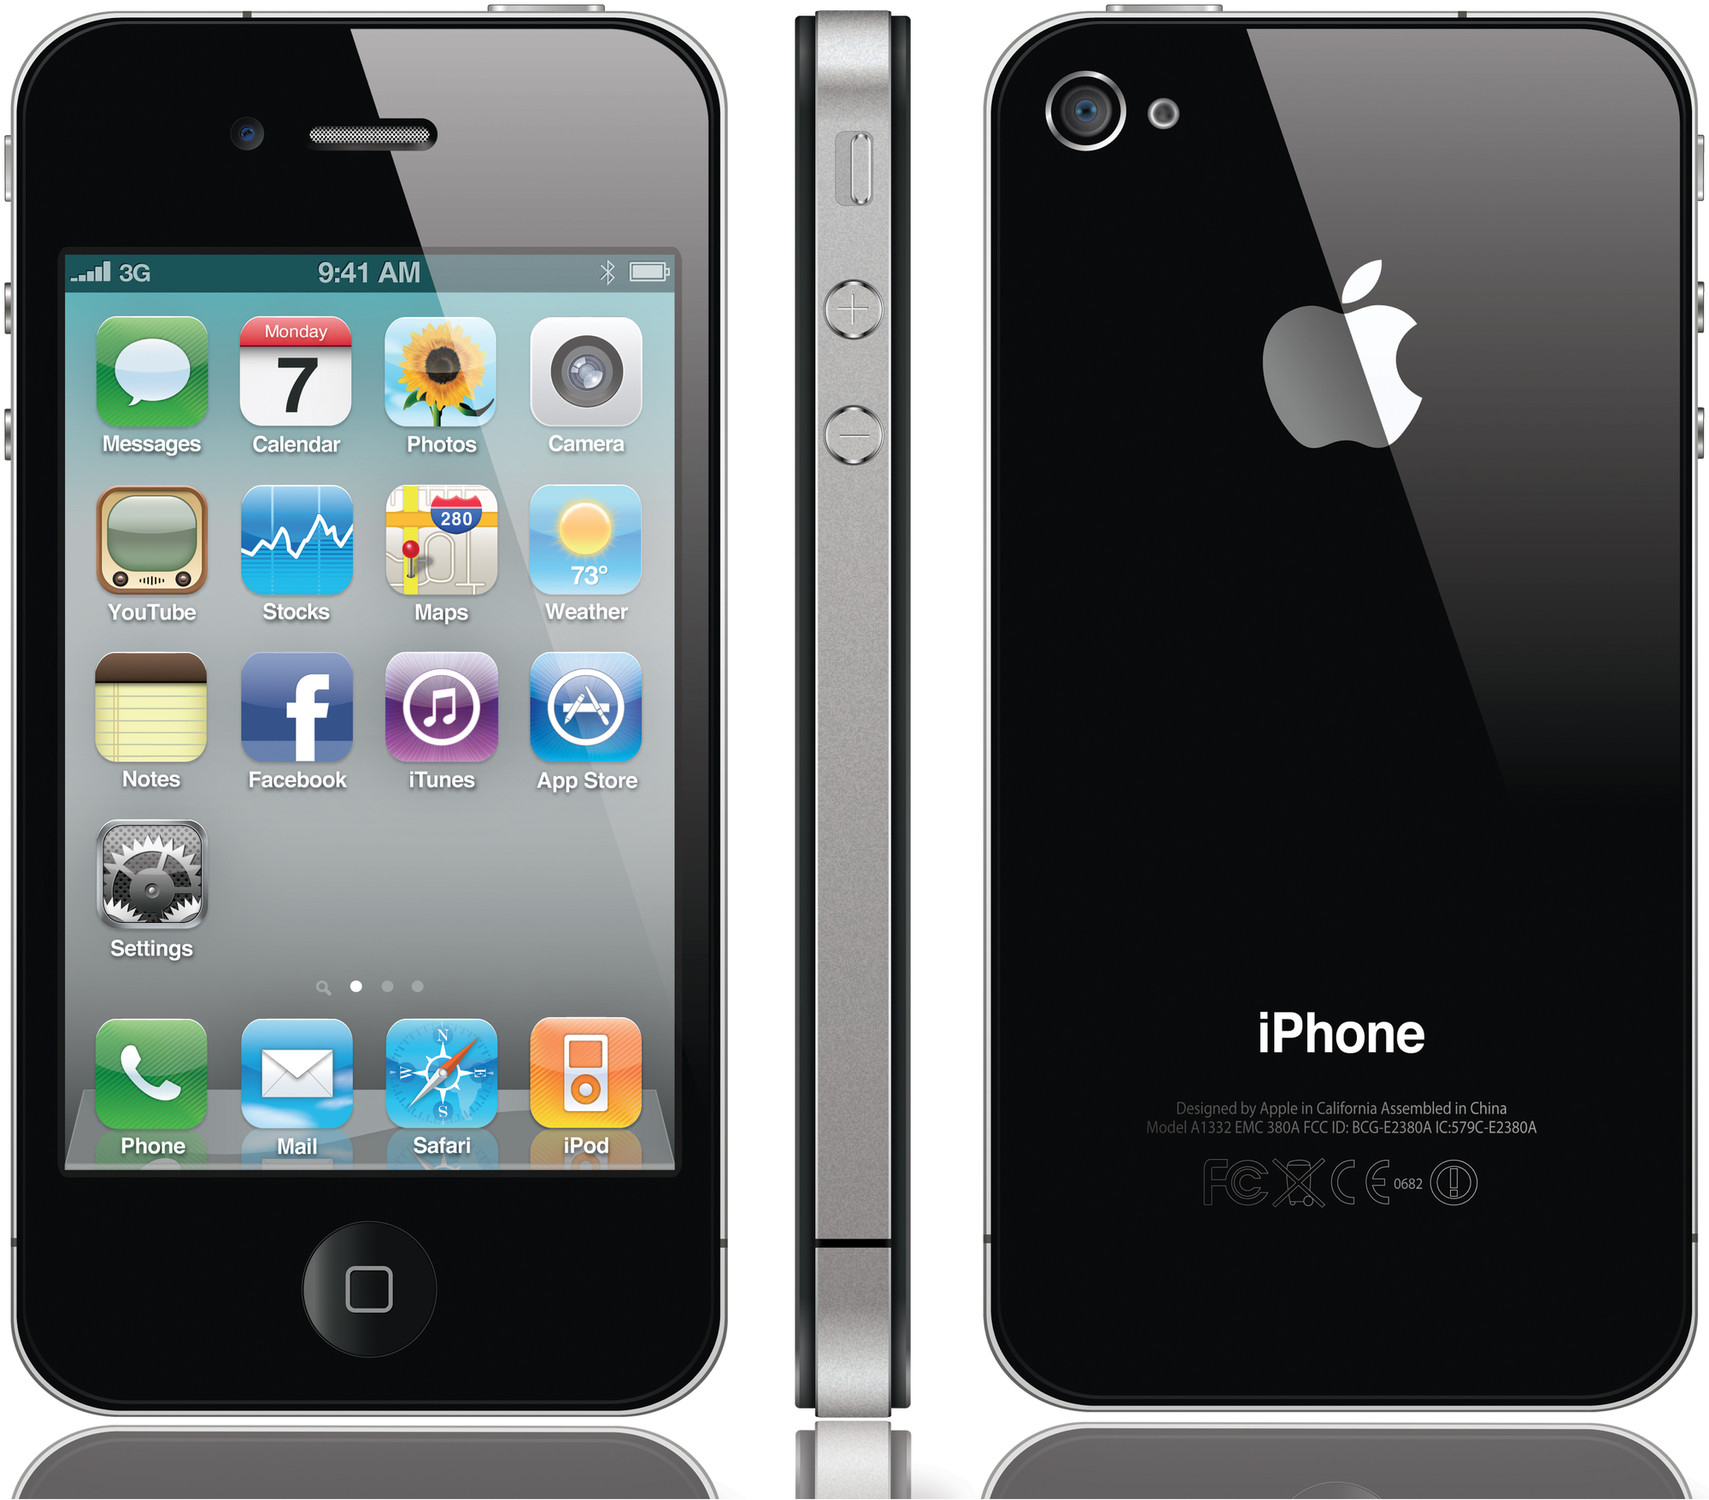 apple iphone 4 16gb specs and price phonegg. Black Bedroom Furniture Sets. Home Design Ideas